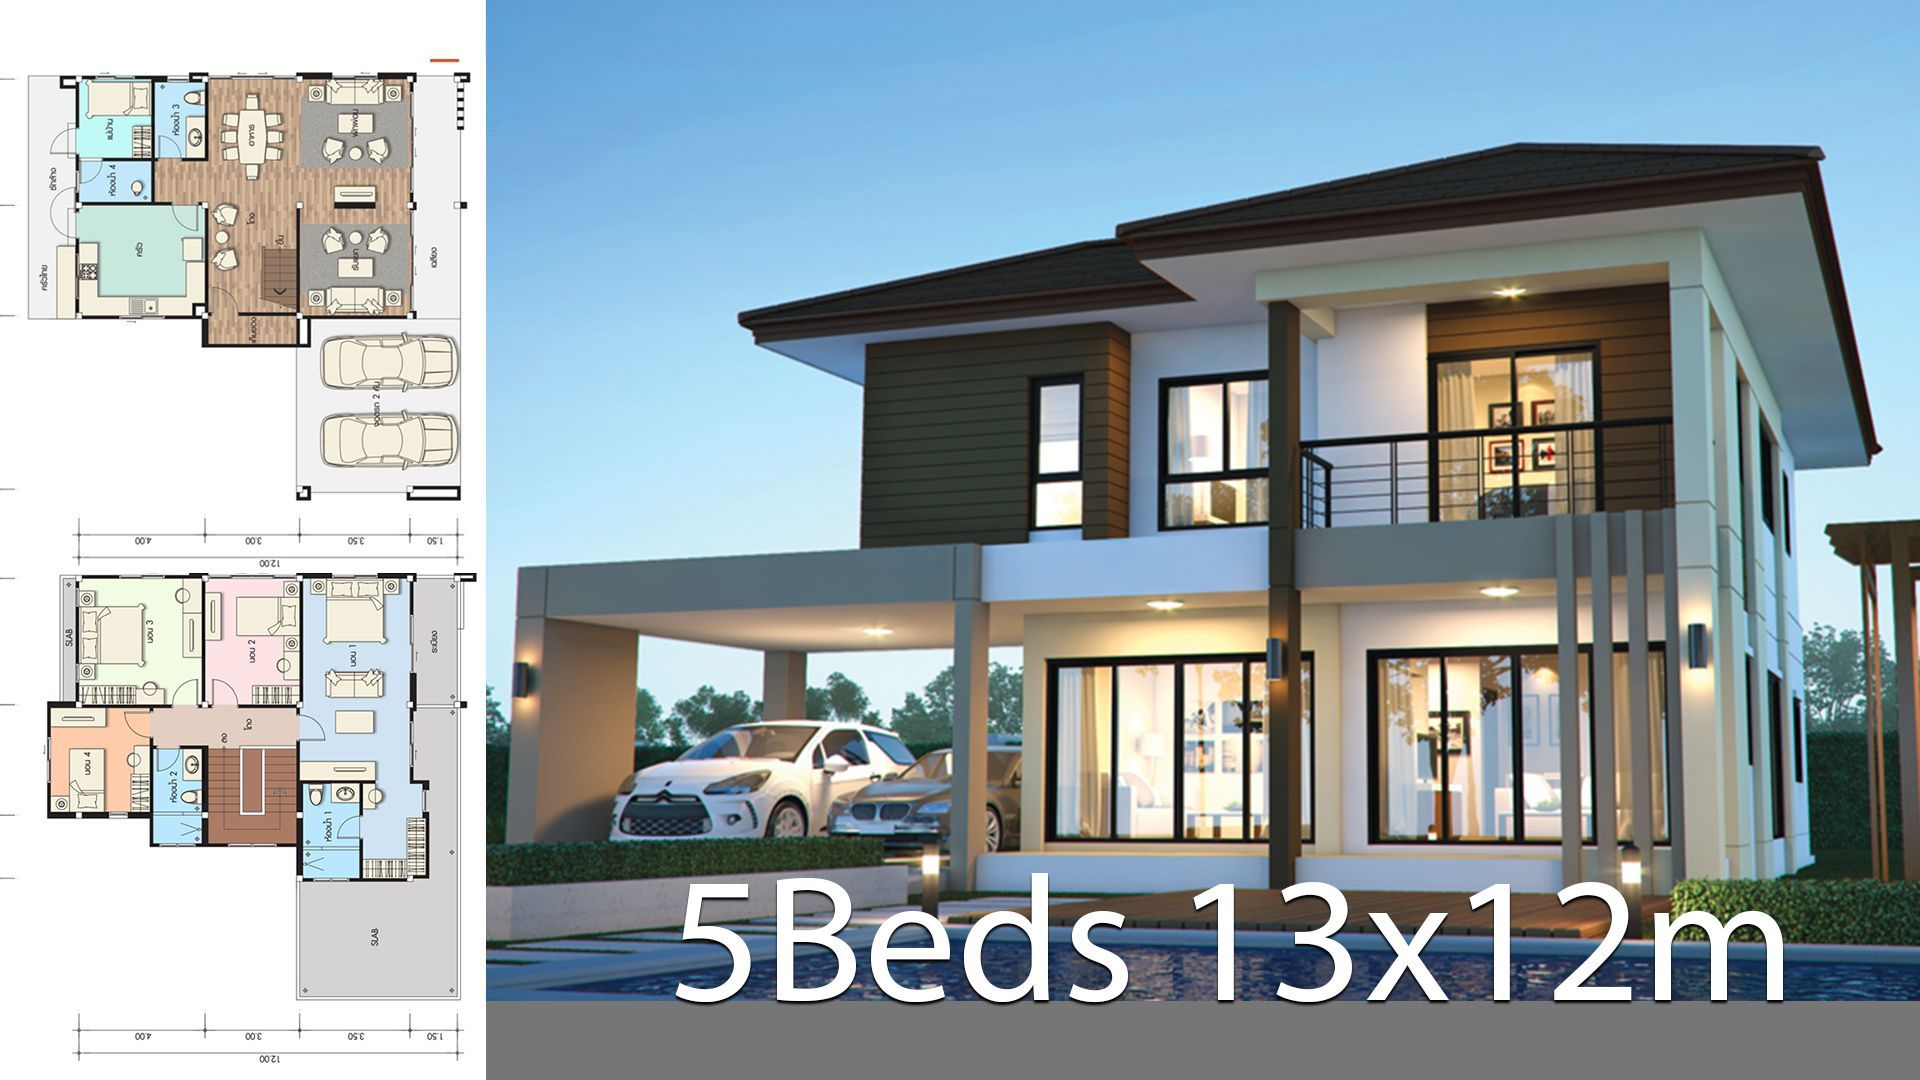 House Design Plan 13x12m With 5 Bedrooms Style Modern Tropicalhouse Description In 2020 Home Design Plans Small House Design House Plans